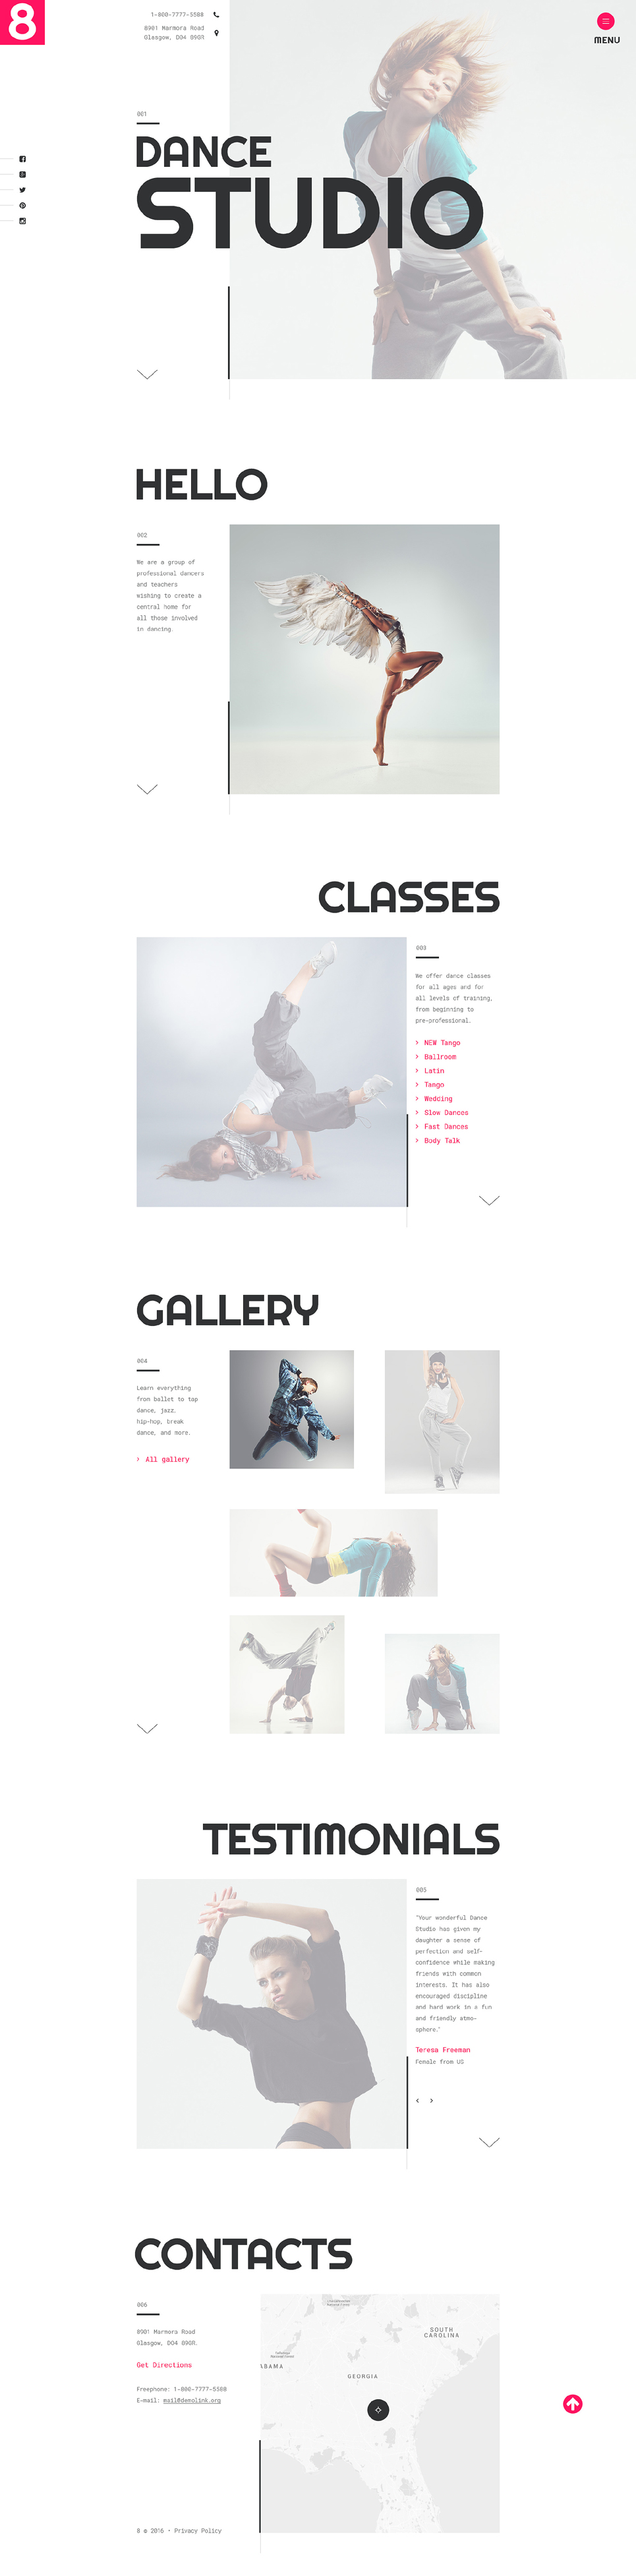 Dance Studio template illustration image